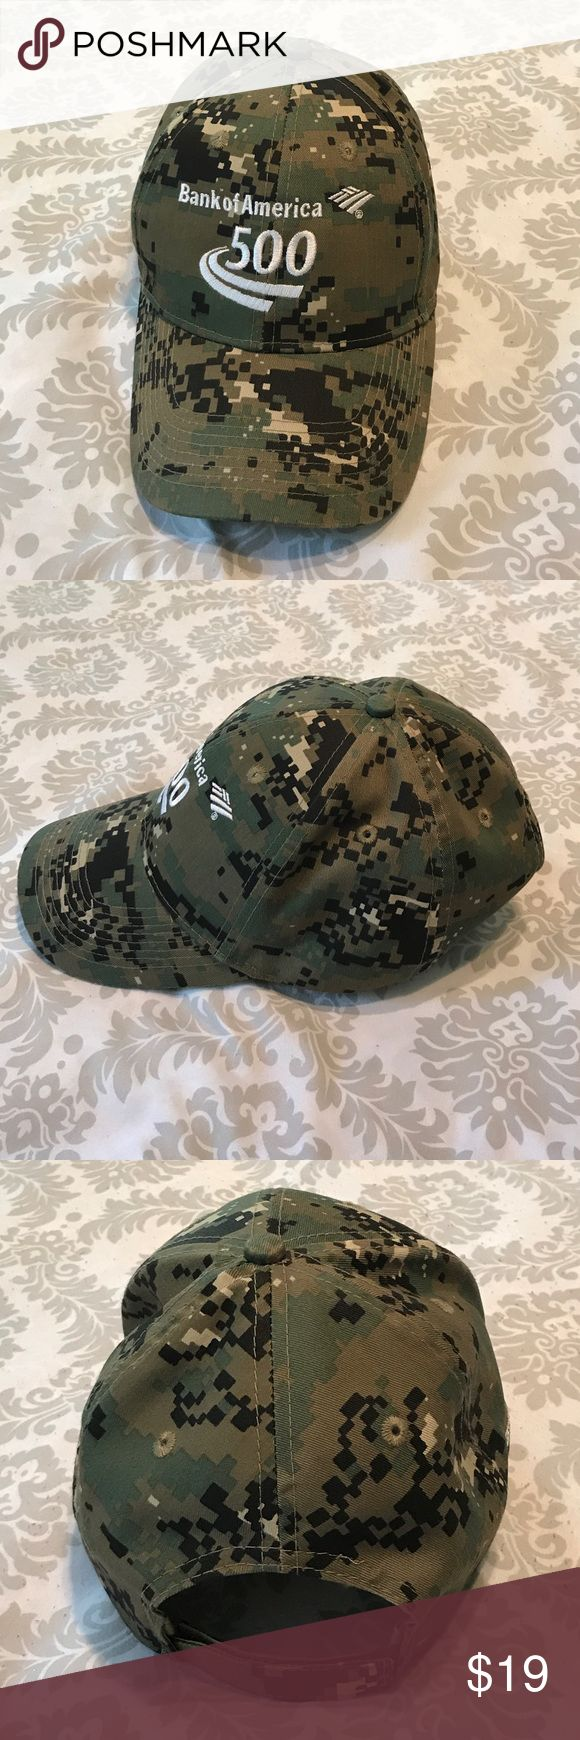 NASCAR Bank of America 500 Army valco back NASCAR Bank of American 500 valco back hat. New but no tag and never worn. otto collectio Accessories Hats